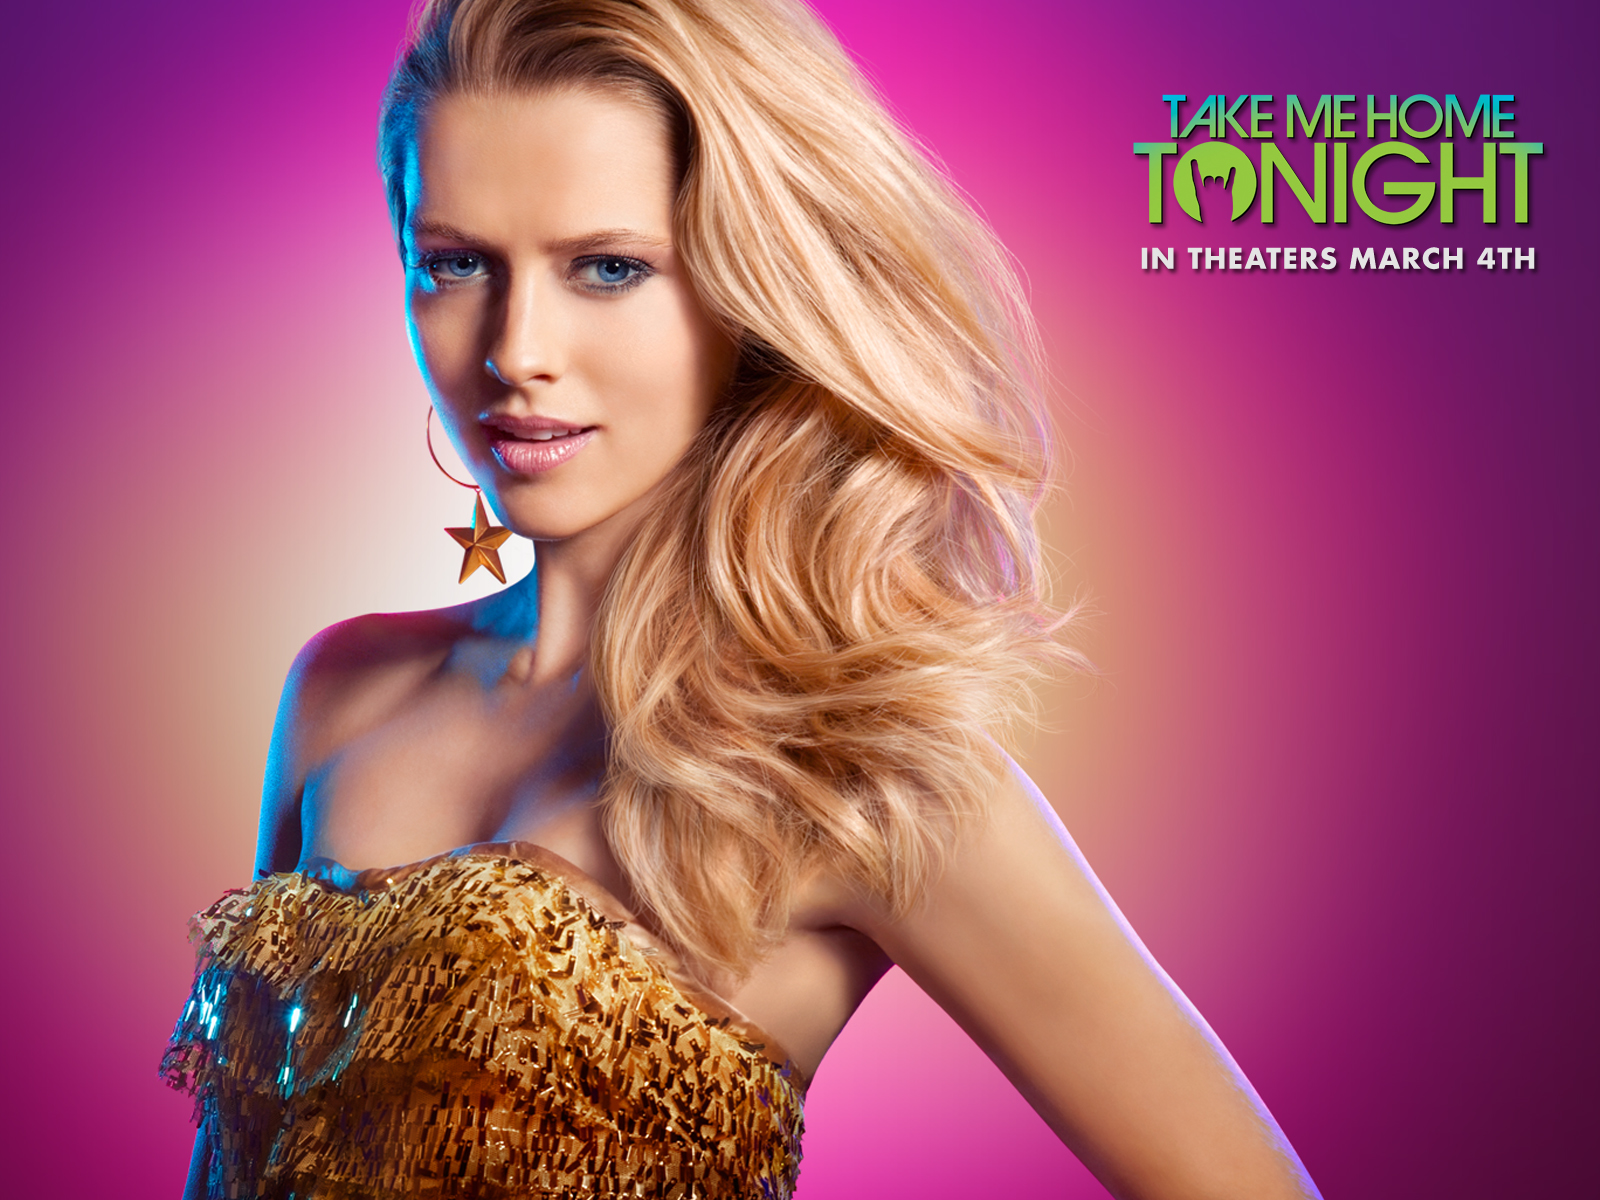 http://3.bp.blogspot.com/-55yyzvcNjw0/TnIU1Y5onvI/AAAAAAAAHAc/gBvu3xmjFjM/s1600/Teresa_Palmer_in_Take_Me_Home_Tonight_Wallpaper_3_800.jpg